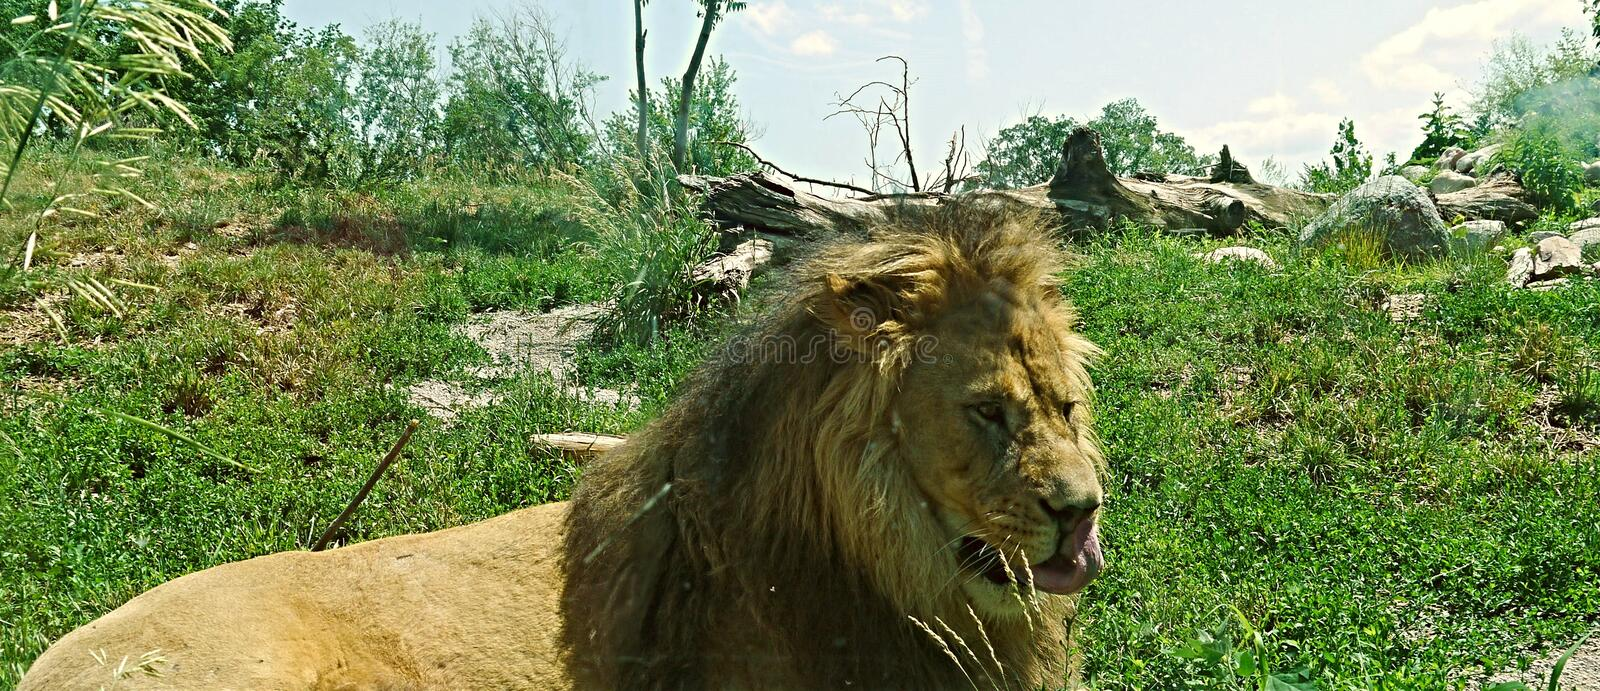 Lion With His Tongue Out images stock